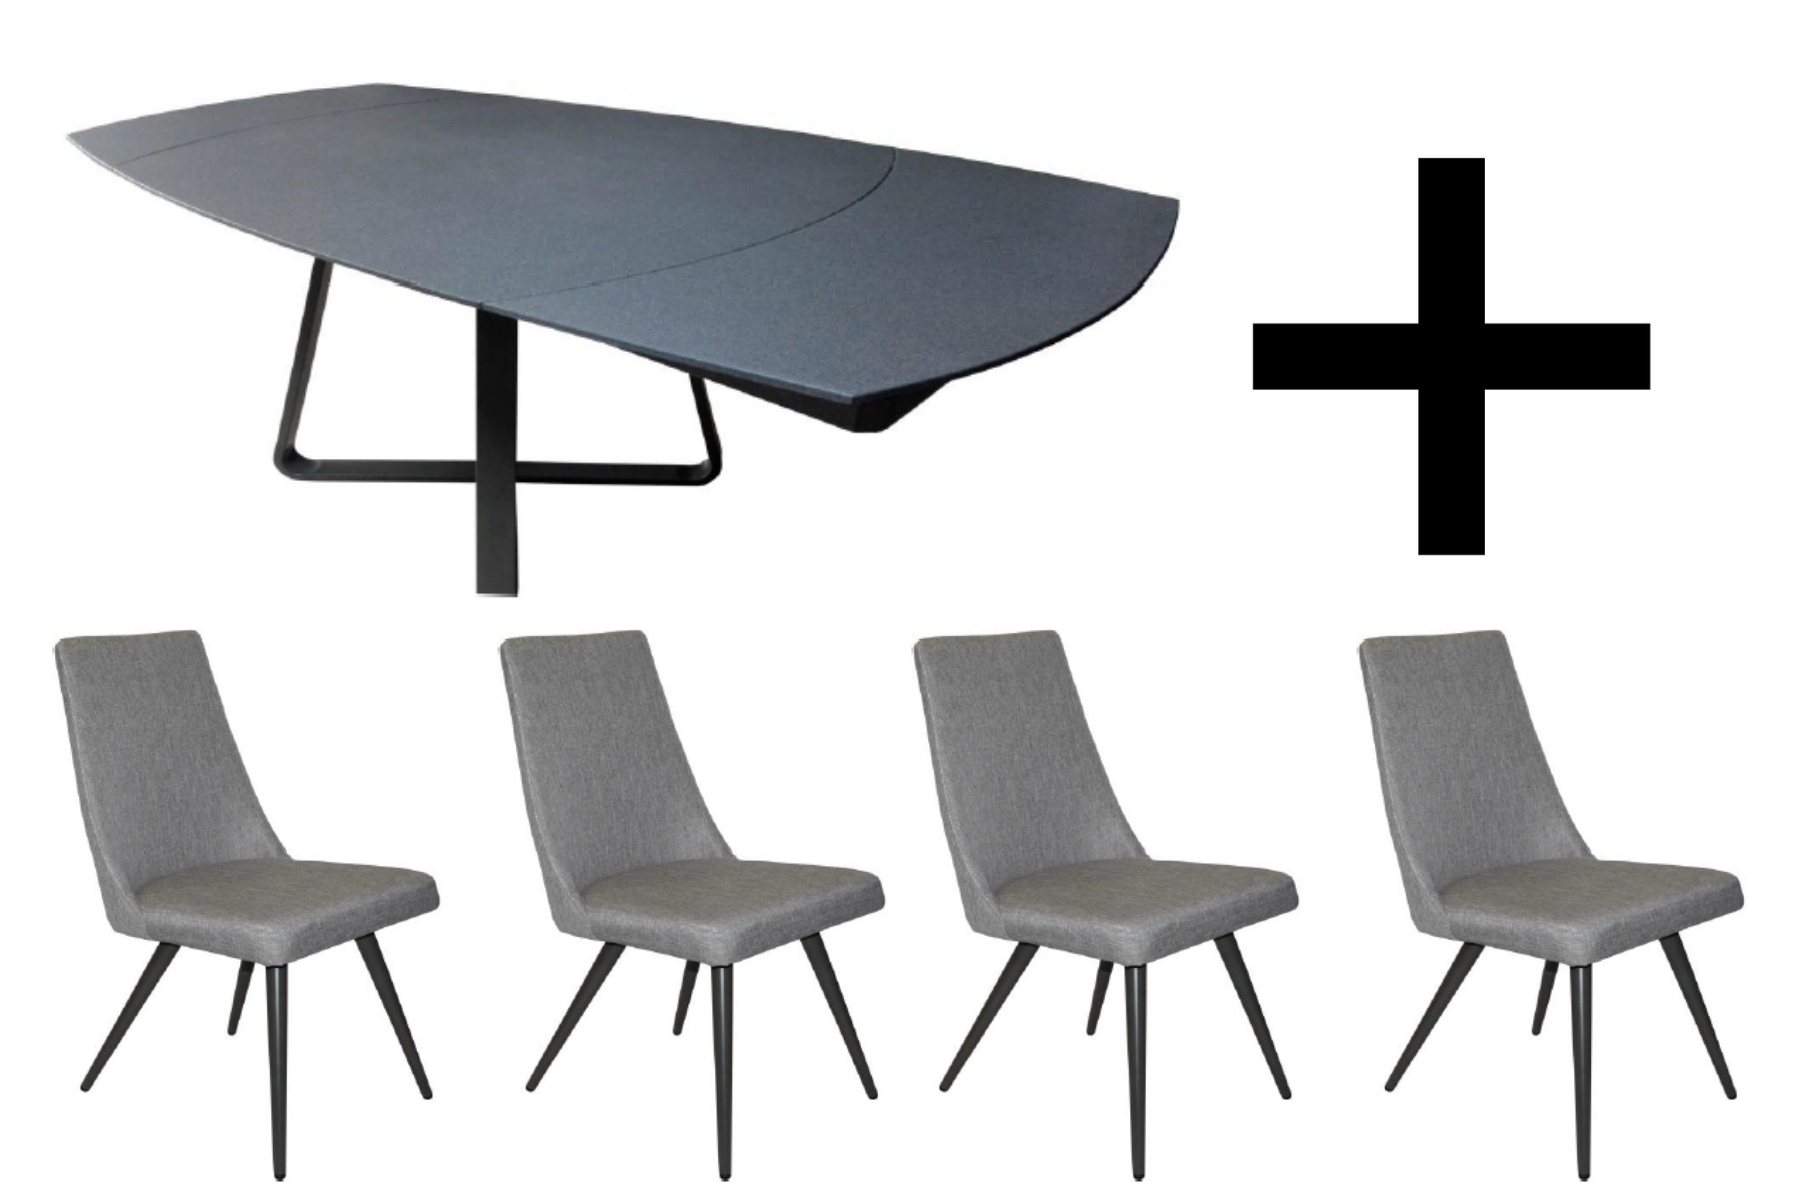 Reflex Dining Table and 4 Evolution Chairs - Bundle Deal